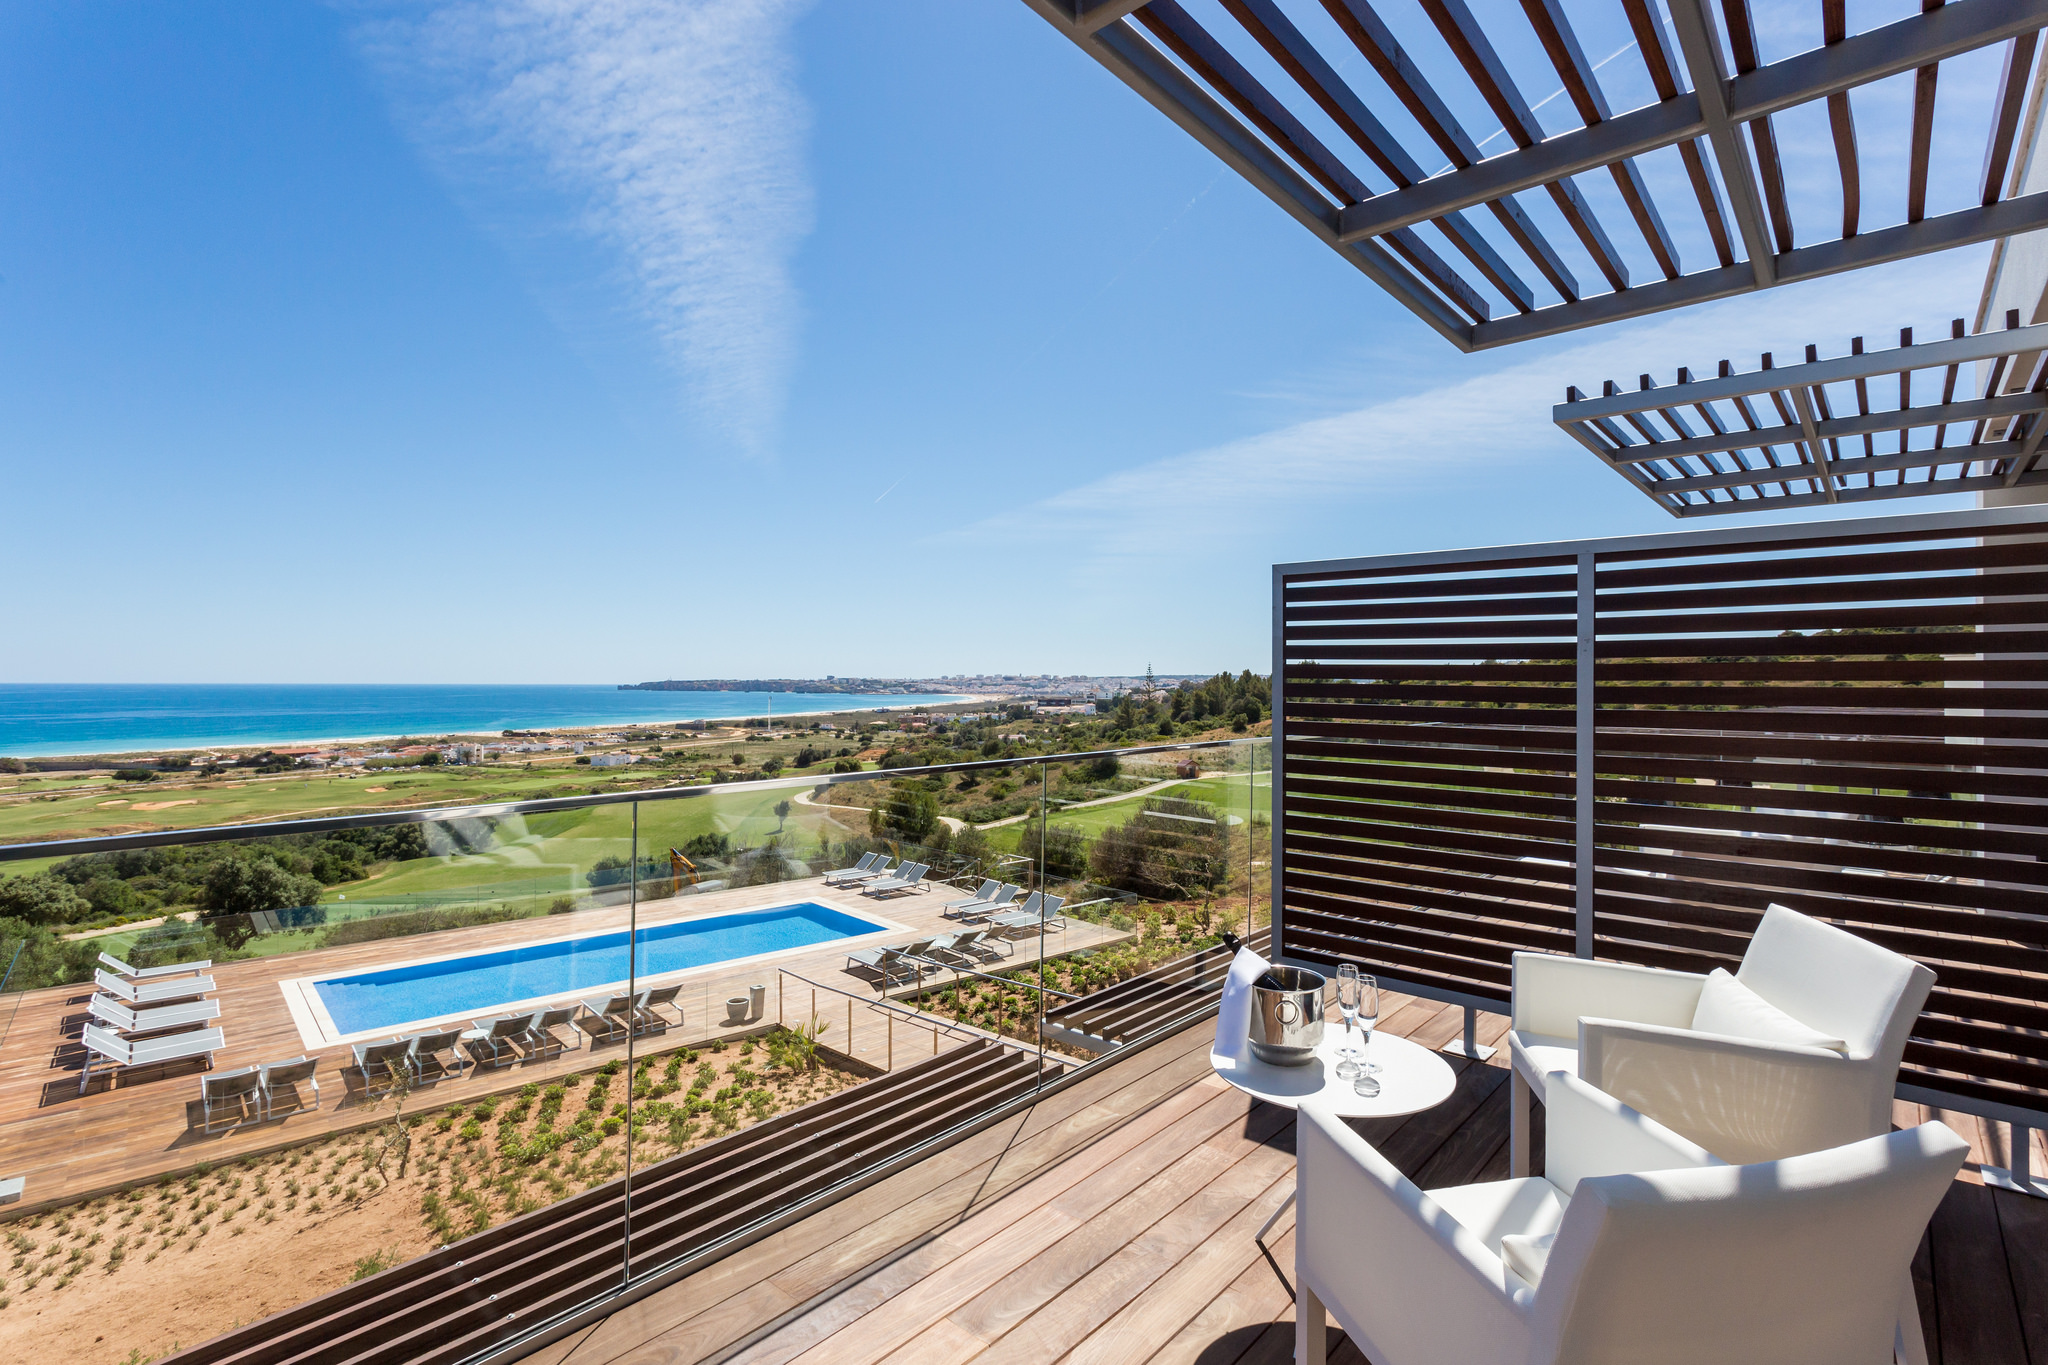 Onyria Palmares Beach House Hotel in Lagos Portugal1.jpg